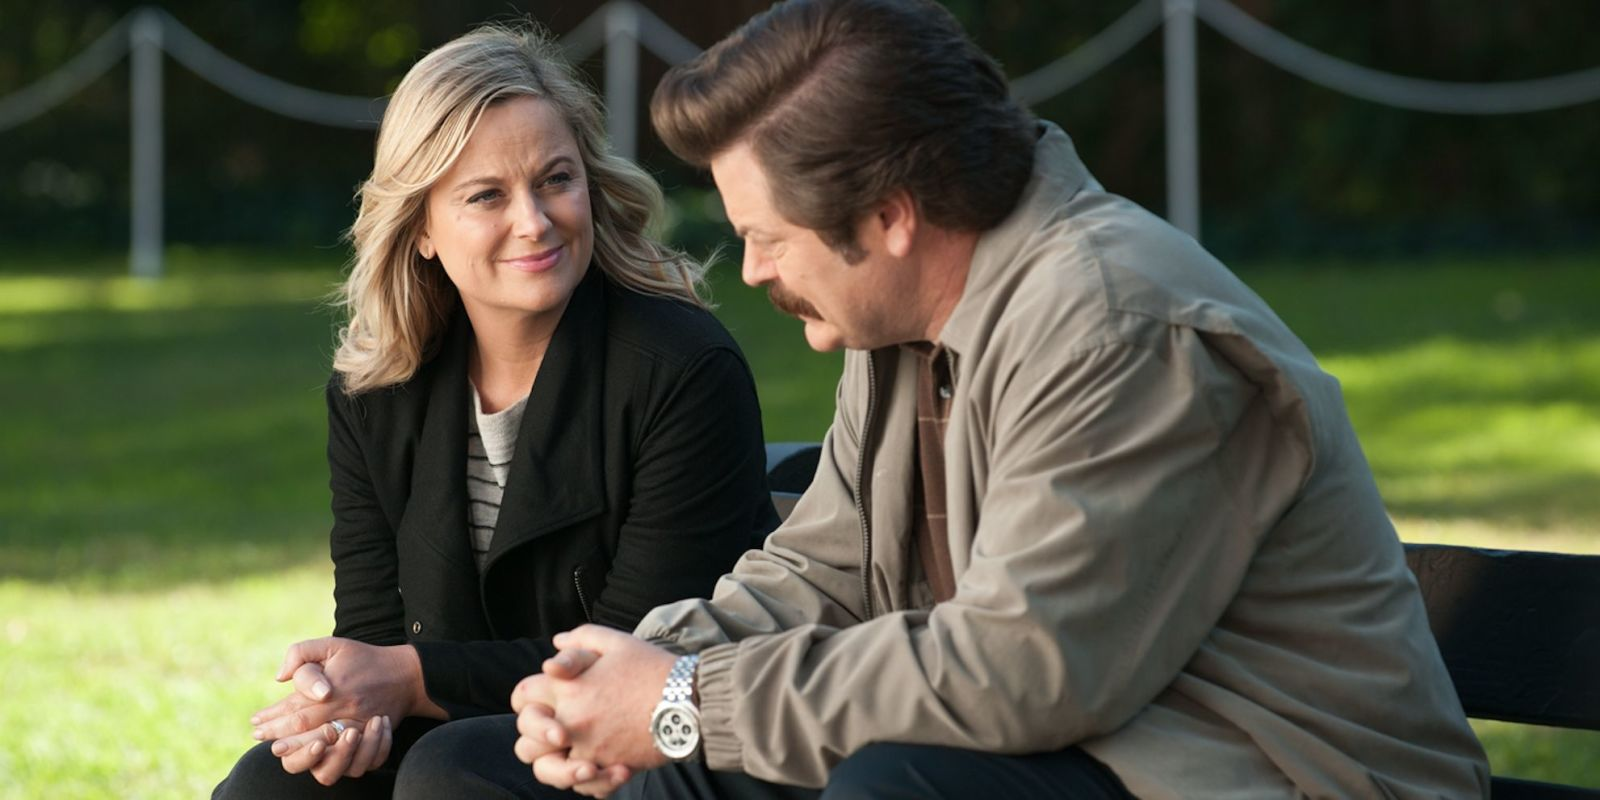 Parks and Recreation's Amy Poehler and Nick Offerman reunite for new TV show, and there's a trailer